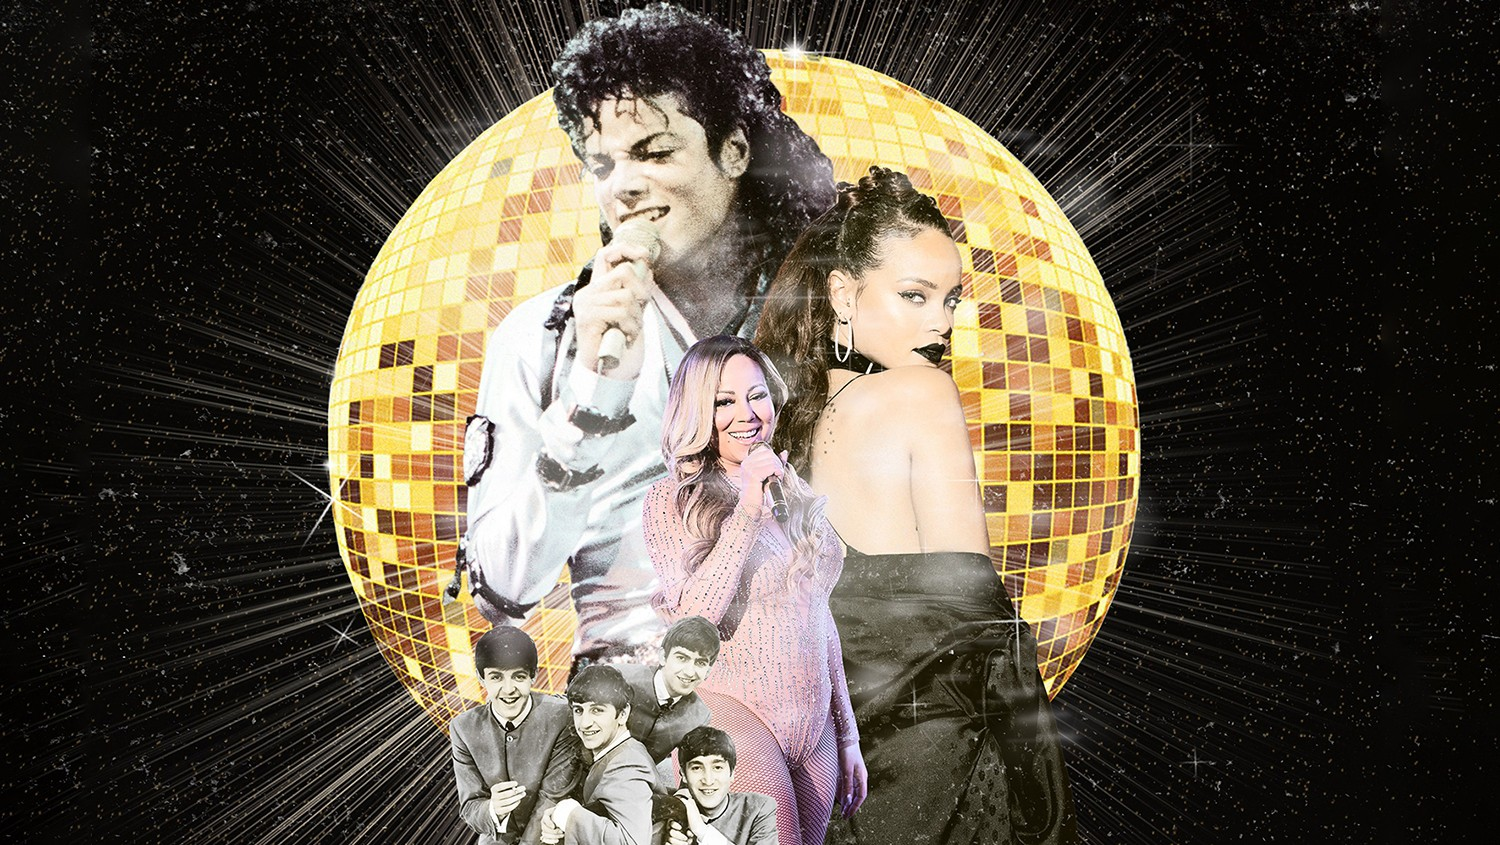 Michael Jackson, Rihanna, Mariah Carey & The Beatles